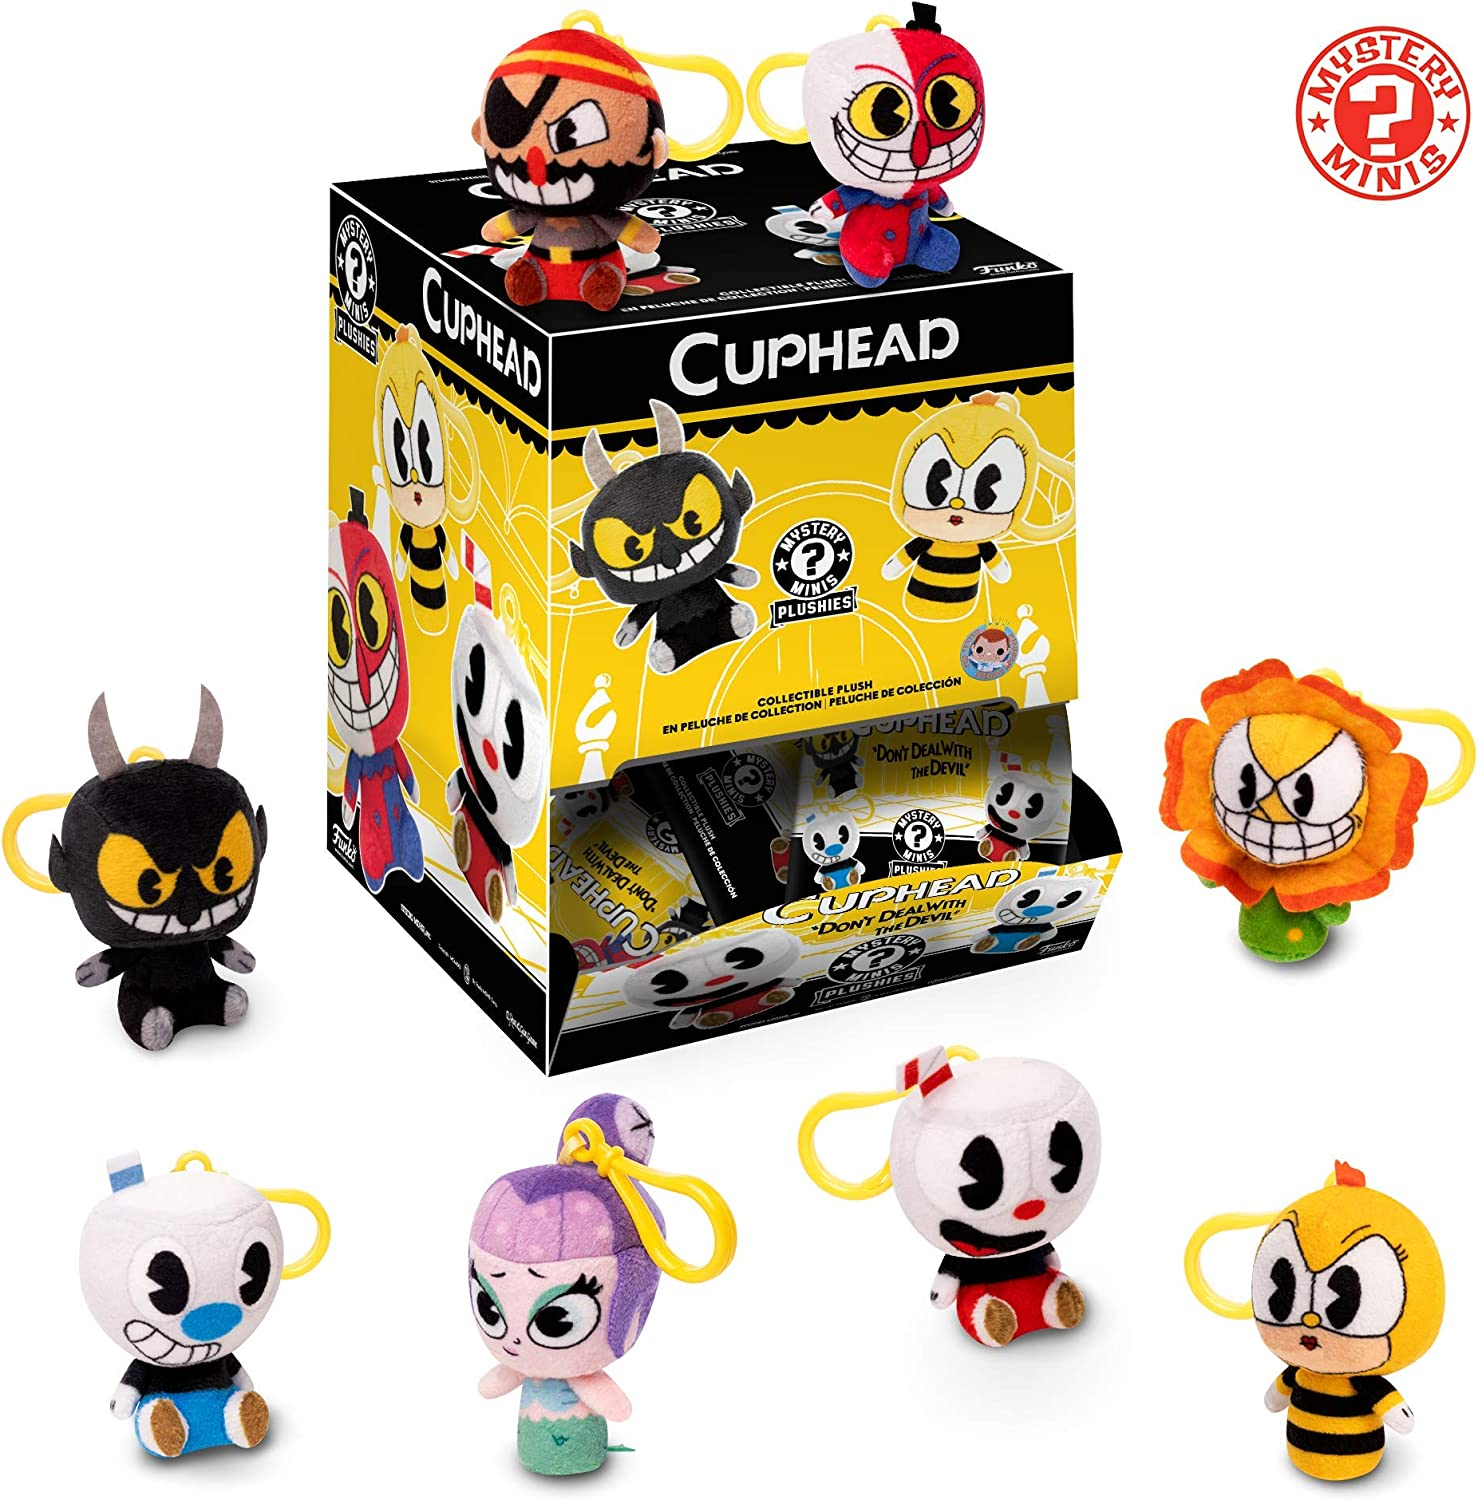 New CUPHEAD Funko Pop Mystery Minis Collectible Plushies Blind Bag Figure